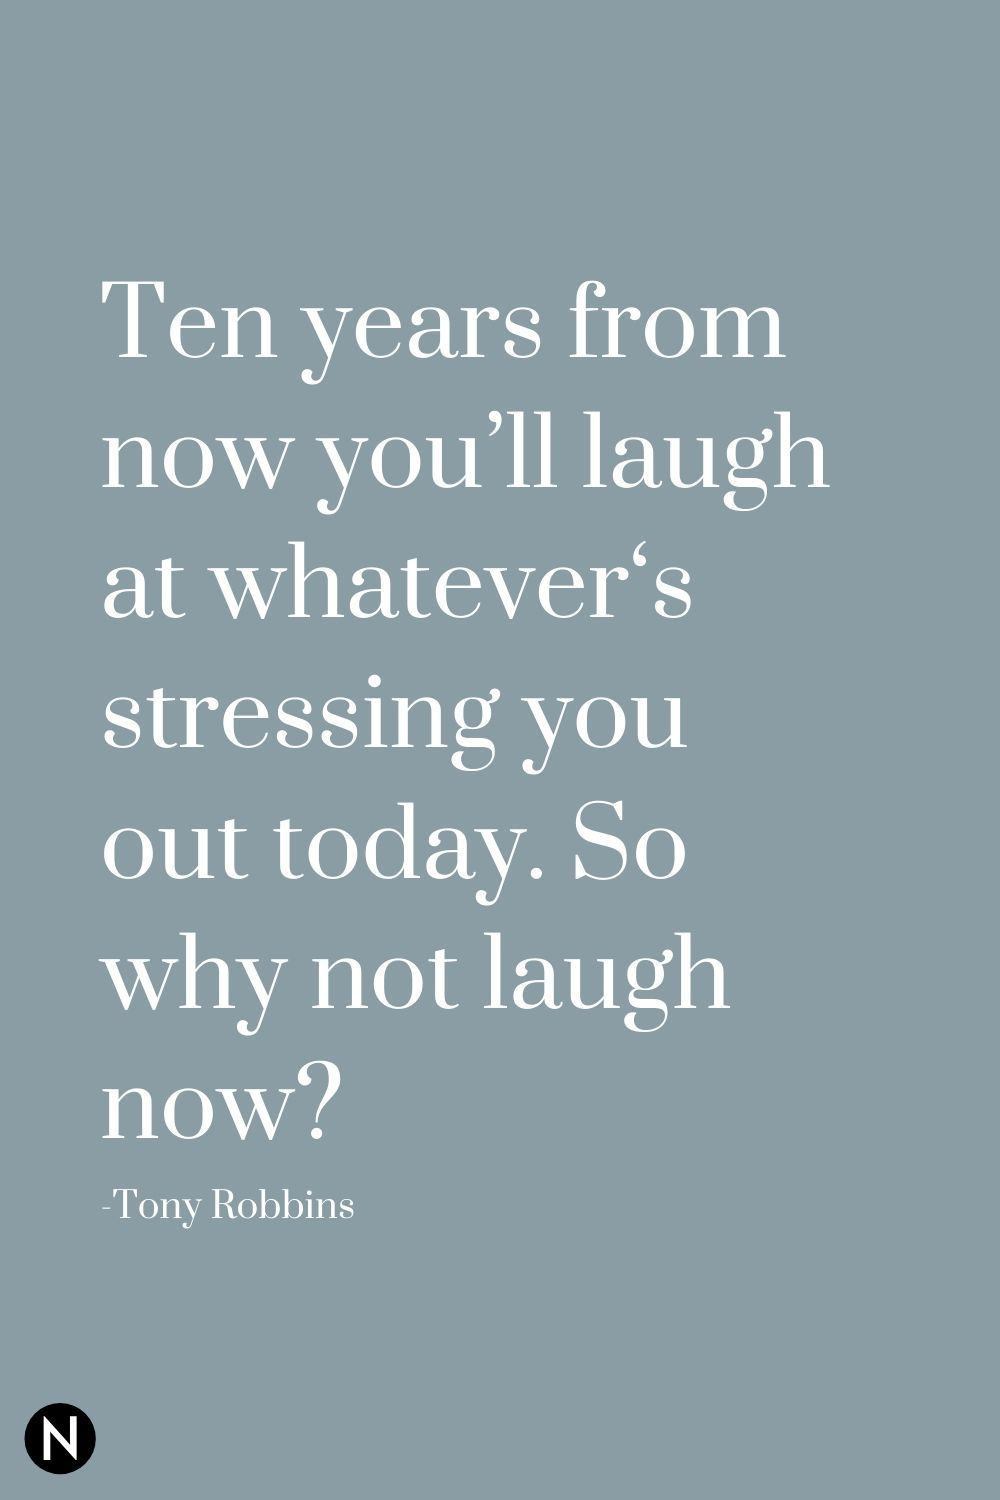 25 Inspirational Quotes To Relieve Stress Next Level Gents Calming Quotes Stress Stress Quotes Cool Words